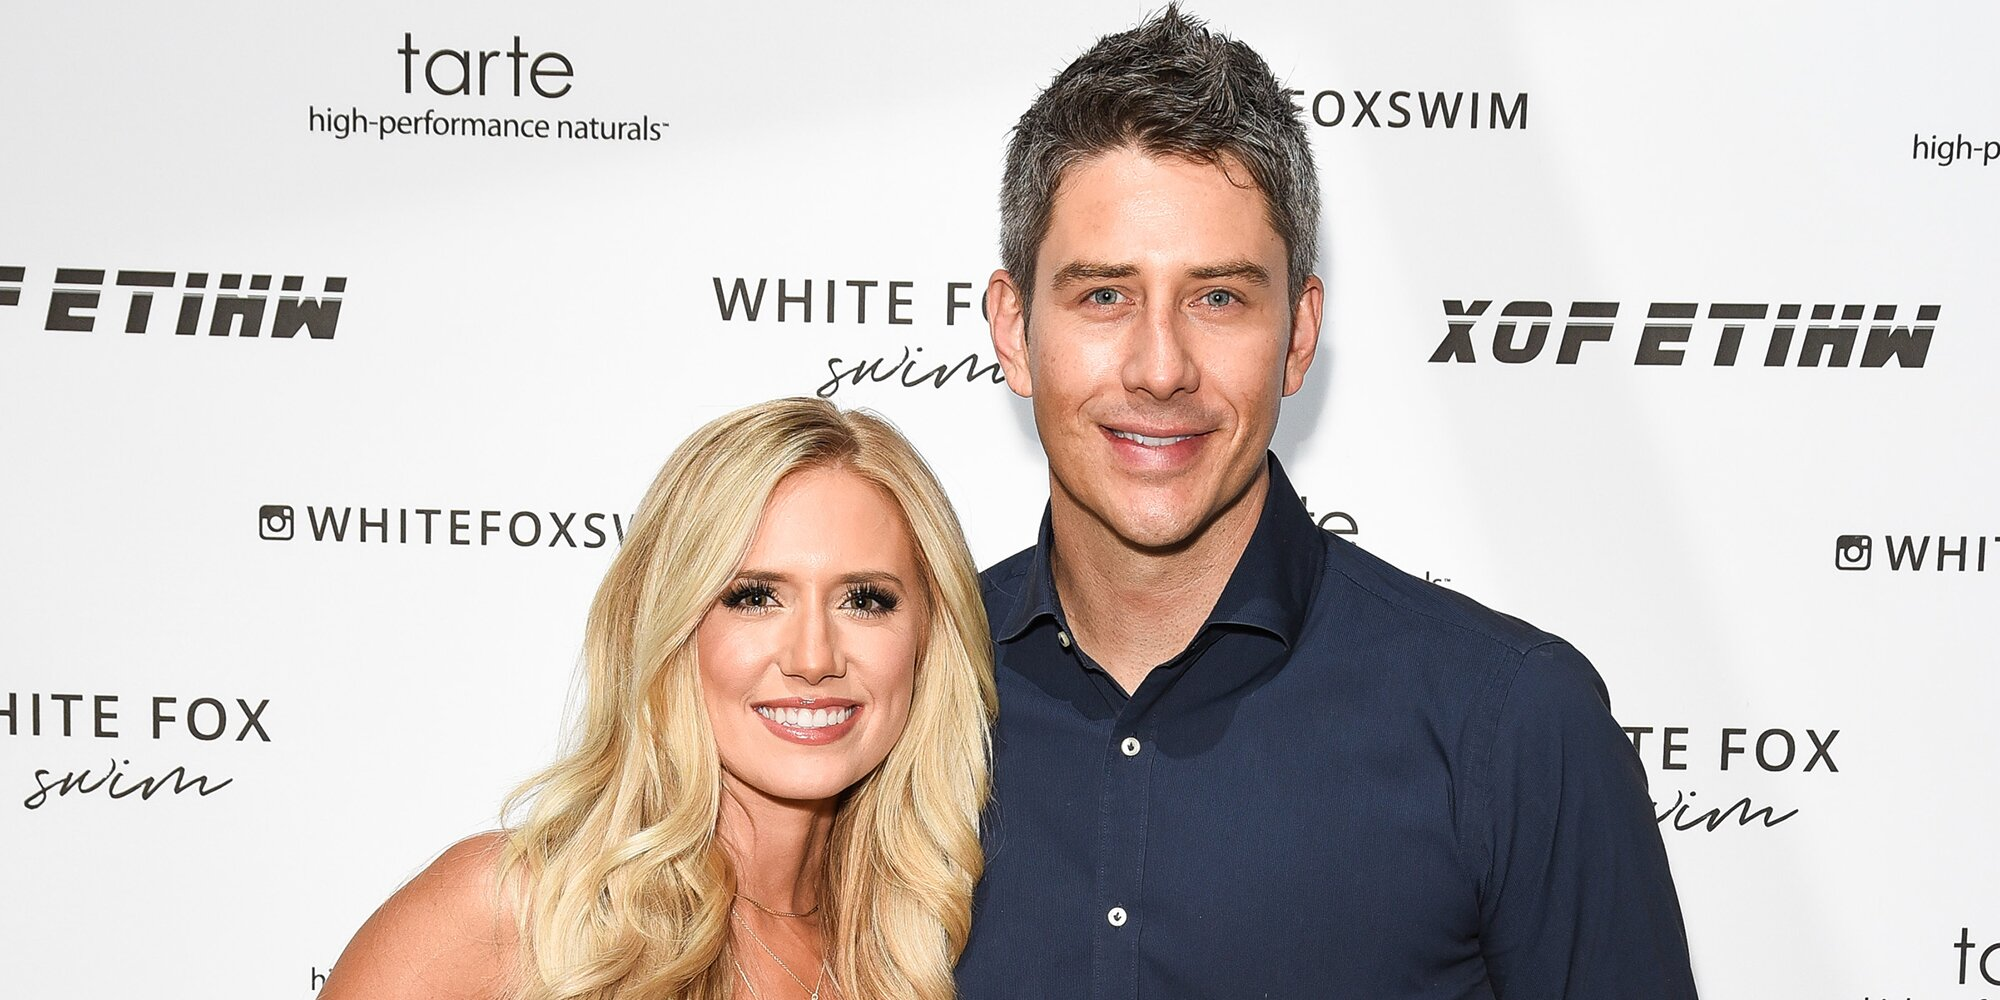 Lauren Burnham and Arie Luyendyk Jr. welcome twins: 'Momma and babies are doing great'.jpg